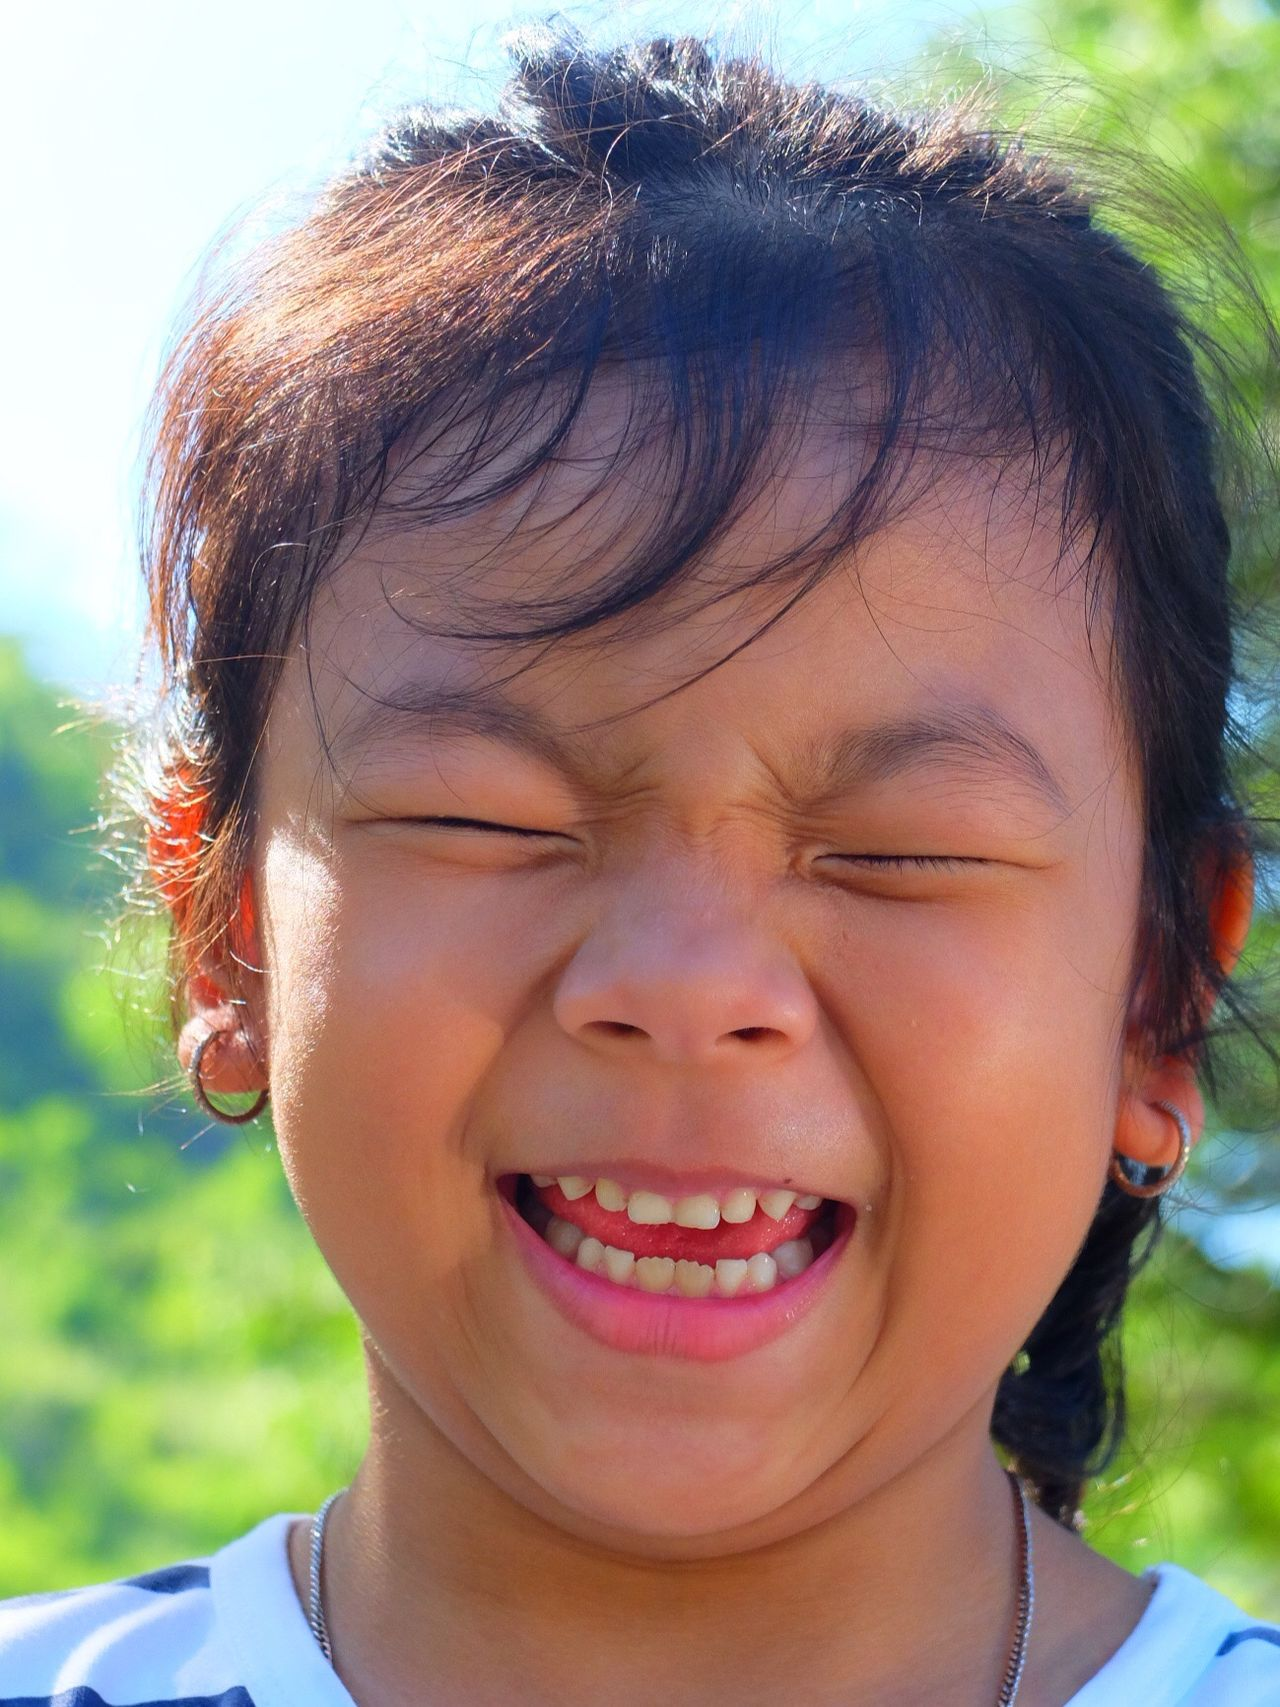 Art Is Everywhere Girls Asian Girl Asiangirl One Girl Only Black Hair Child Childhood Smile Loughing Lough Bokeh Green Background Tree Teeth Tounge Out